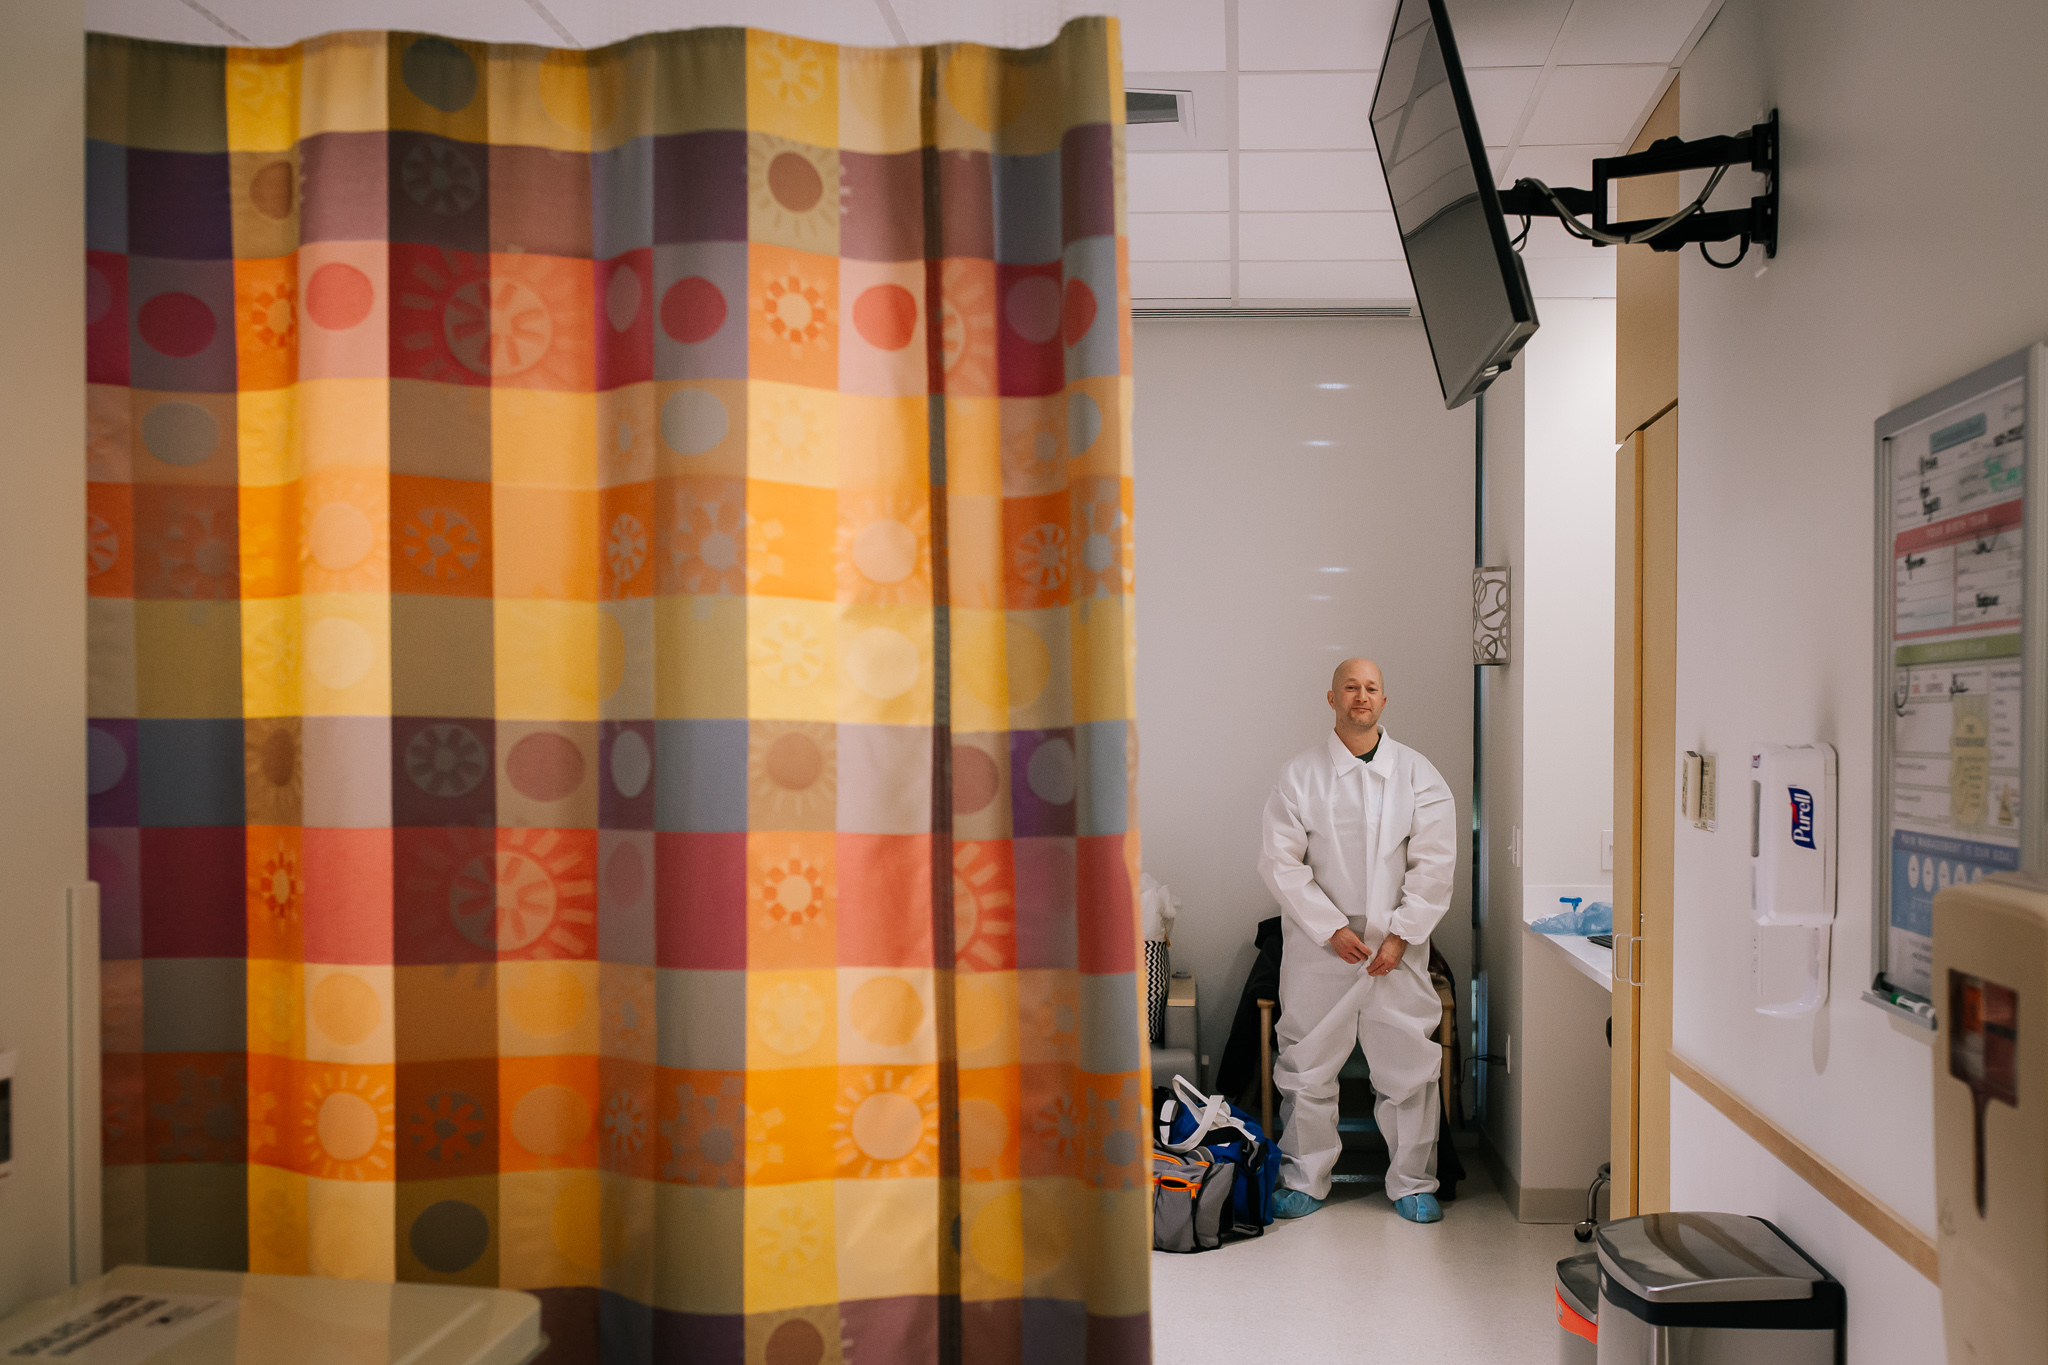 Man behind a hospital curtain gets a sterile suit on before a cesarean section.